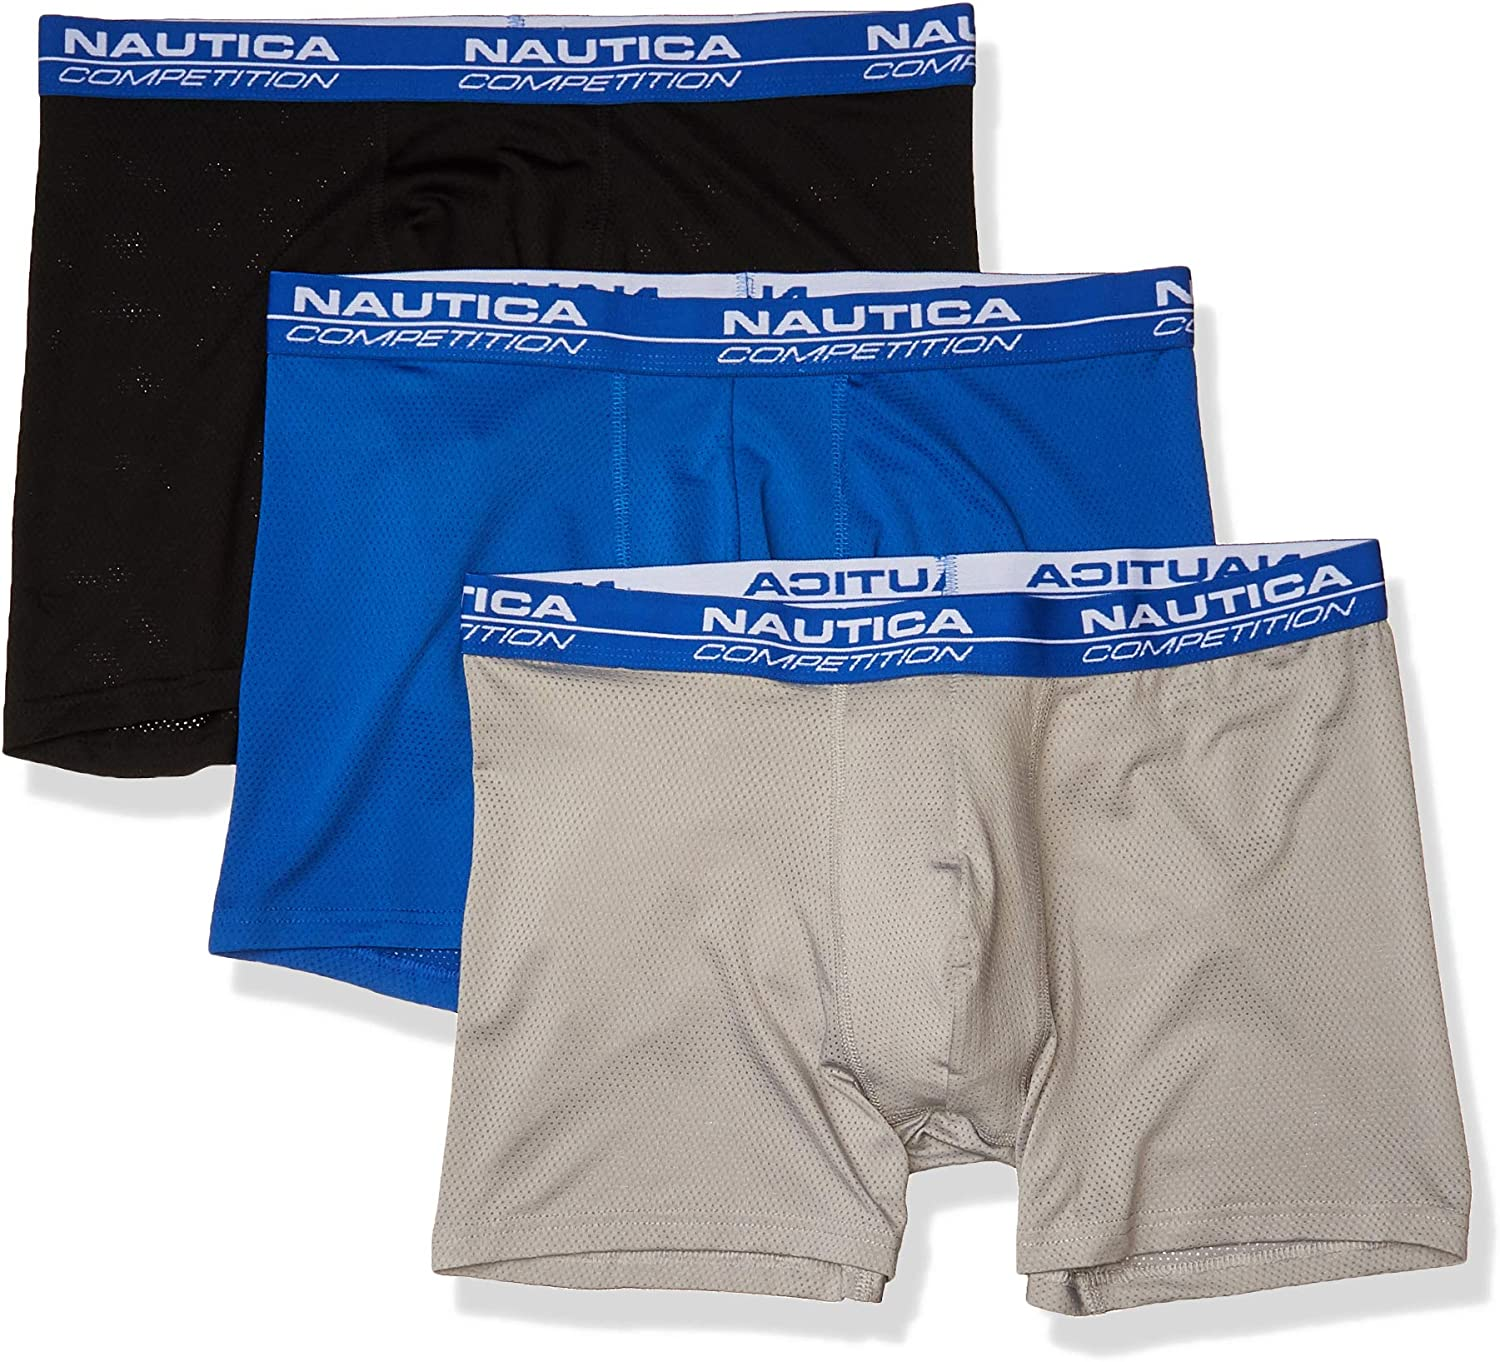 Nautica Men's Competition 3 Pack Mesh Boxer Brief